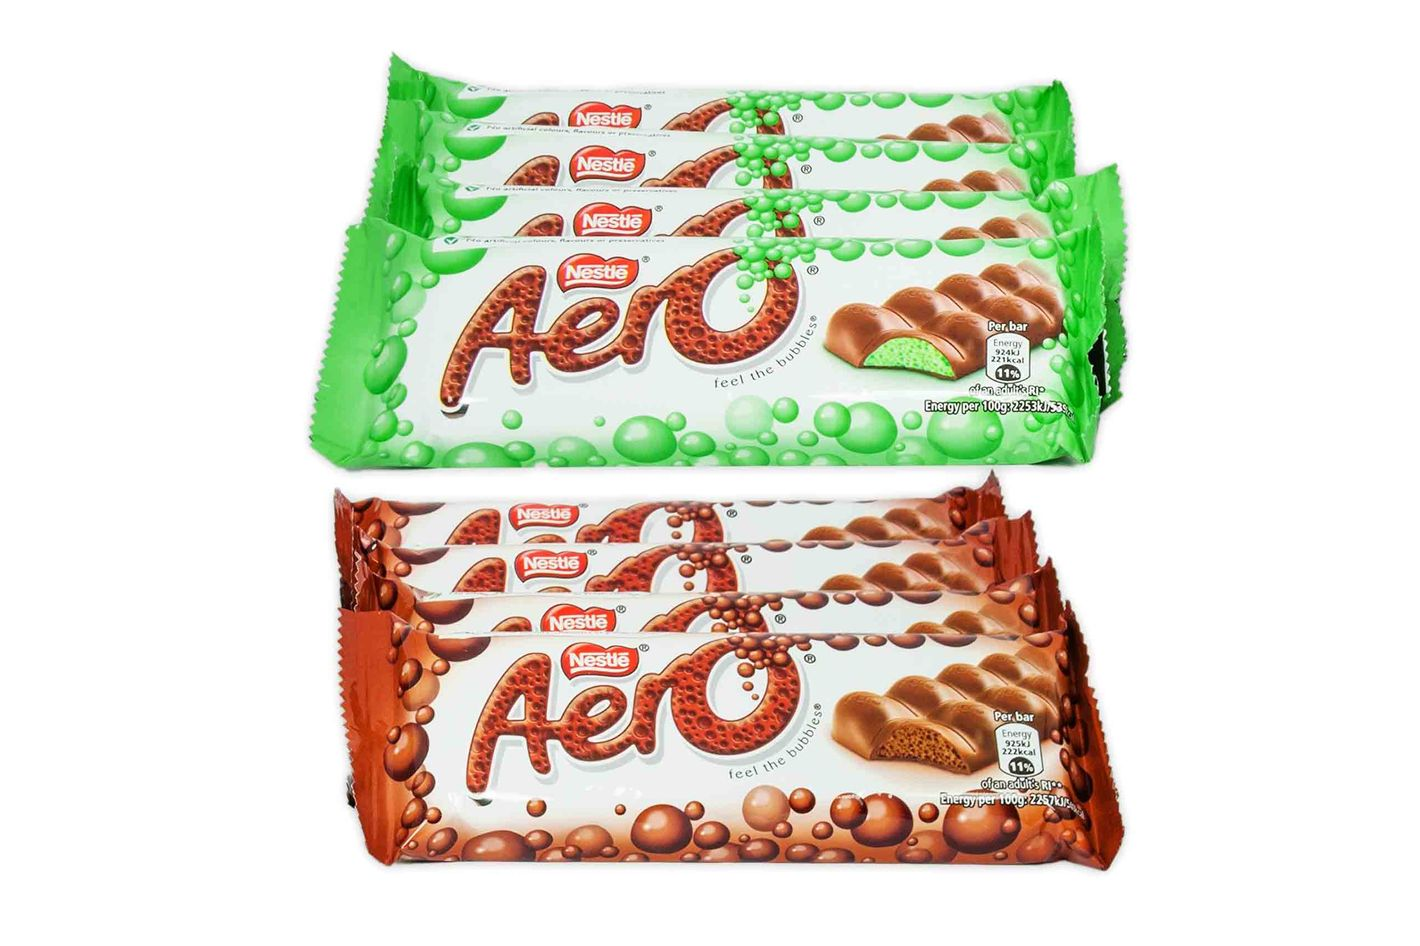 Nestle Aero Milk Chocolate and Peppermint Bar Sample Pack